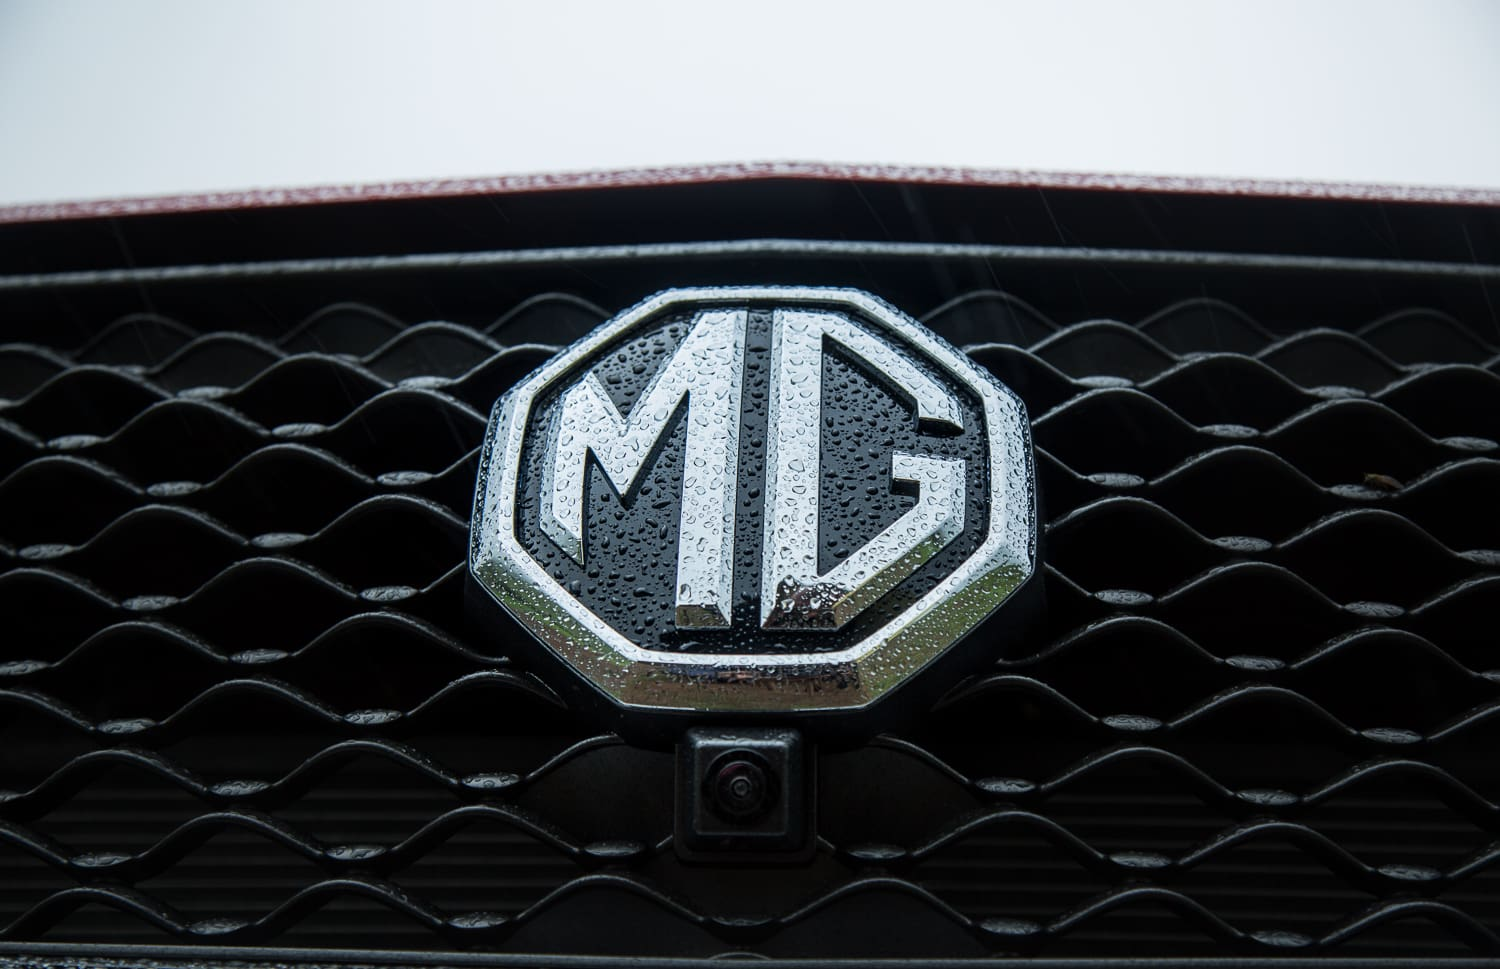 MG Customers: What They Have To Say About The Brand